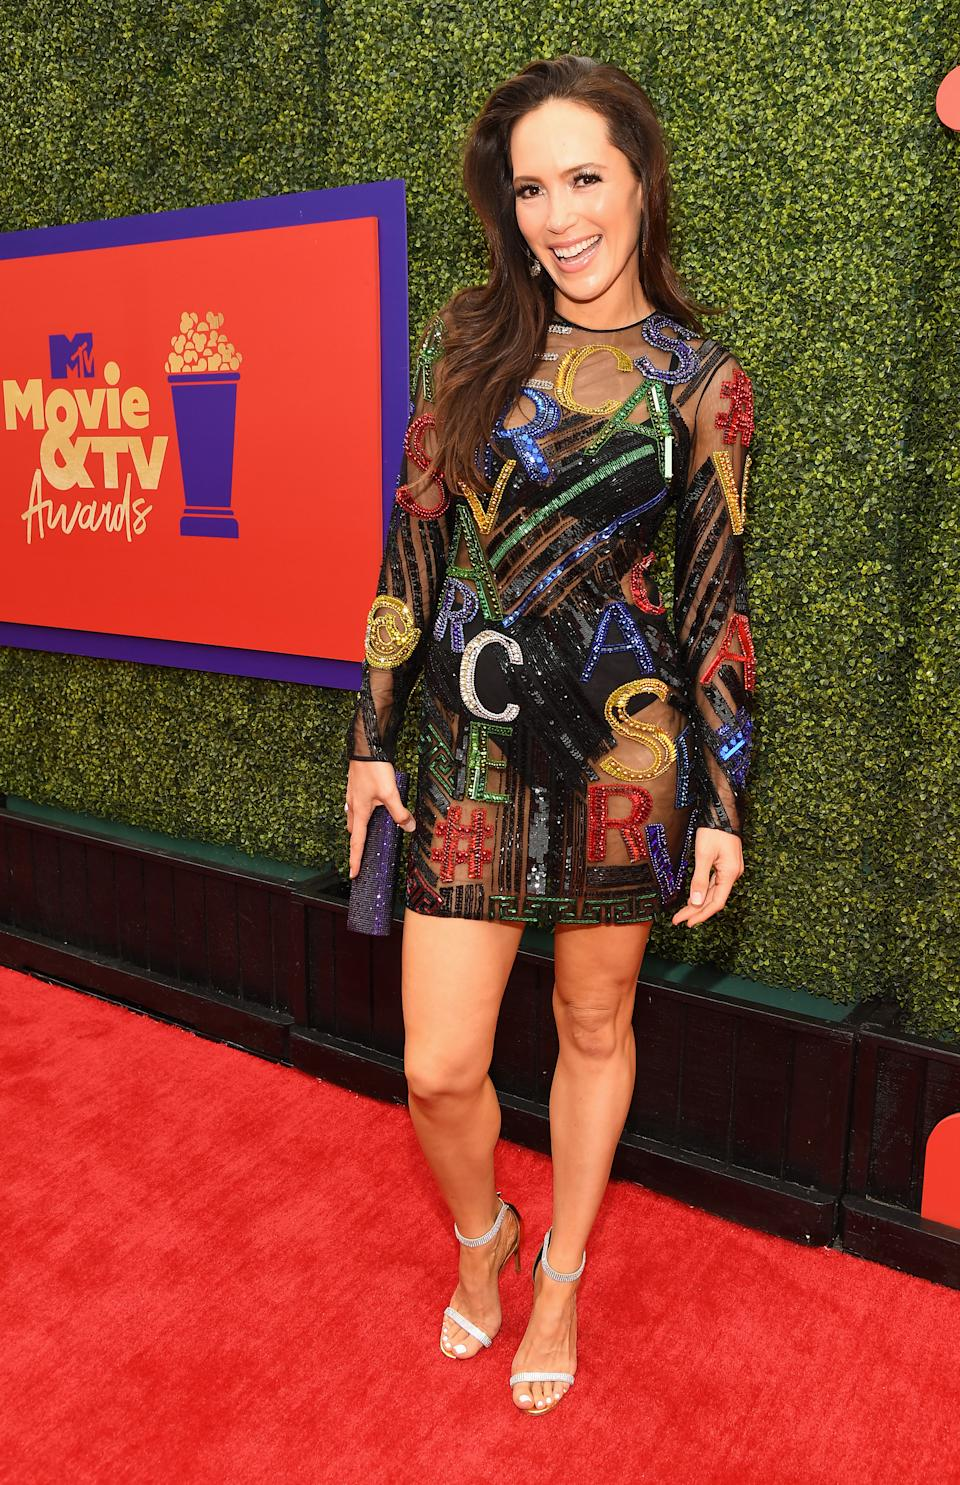 LOS ANGELES, CALIFORNIA - MAY 17: In this image released on May 17, Davina Potratz attends the 2021 MTV Movie & TV Awards: UNSCRIPTED in Los Angeles, California. (Photo by Kevin Mazur/2021 MTV Movie and TV Awards/Getty Images for MTV/ViacomCBS)